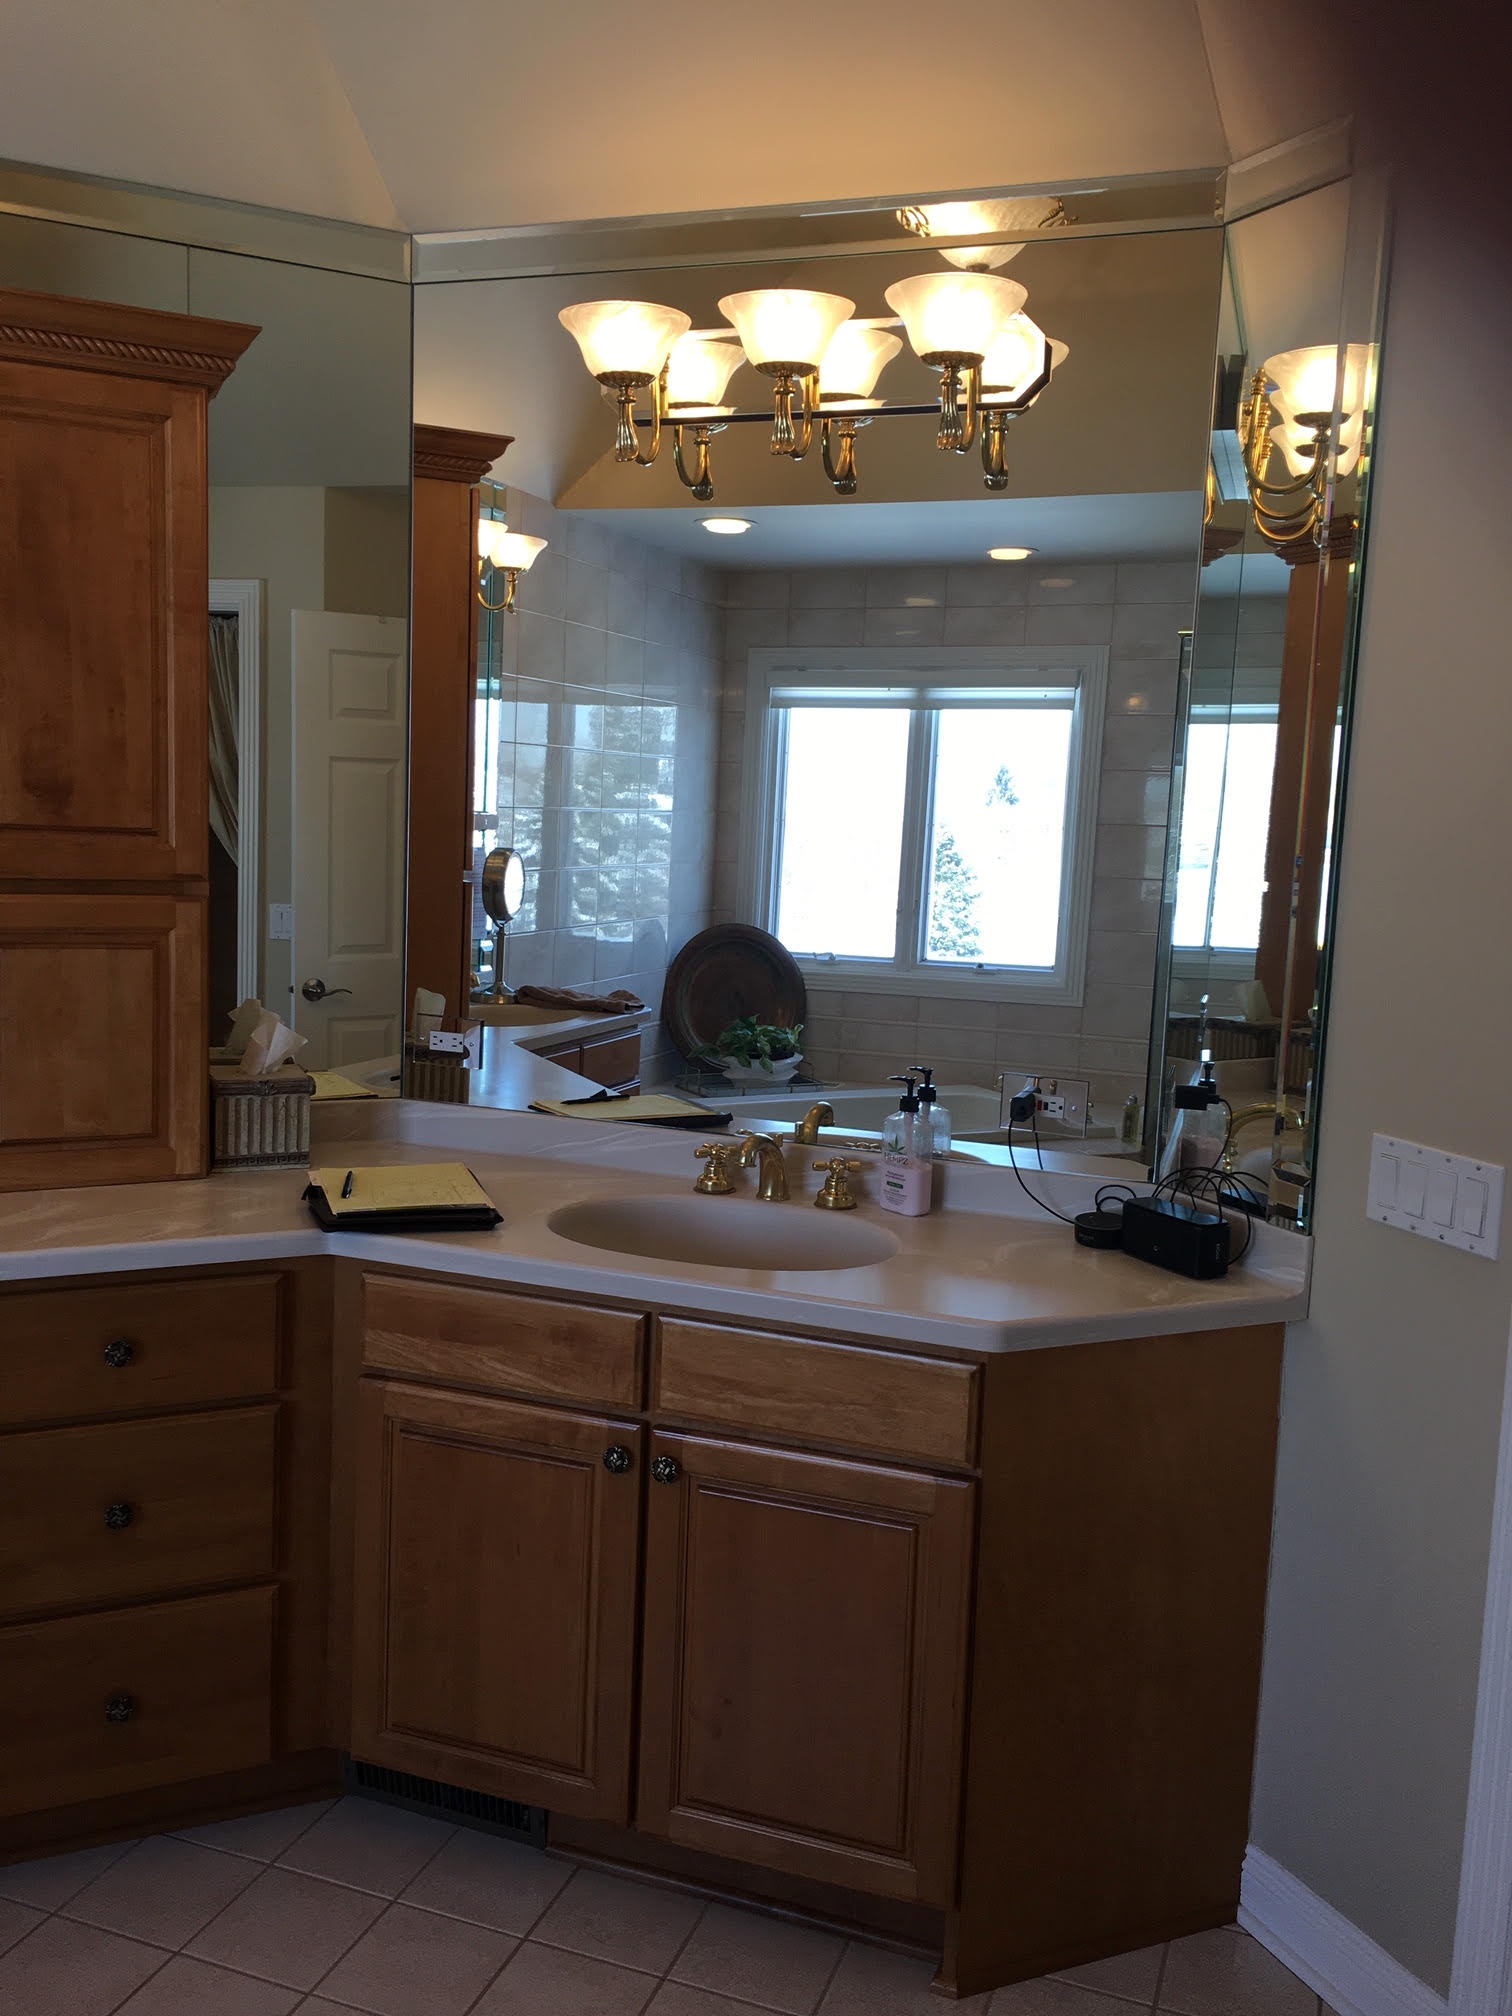 Before Photo of Naperville IL. Bathroom Remodel & Cabinet Painting. Replace Old Shower with New Marble and Oversized Tub Deck with Freestanding Tub. White & Grey Bathrooms. Renovations. Updating.